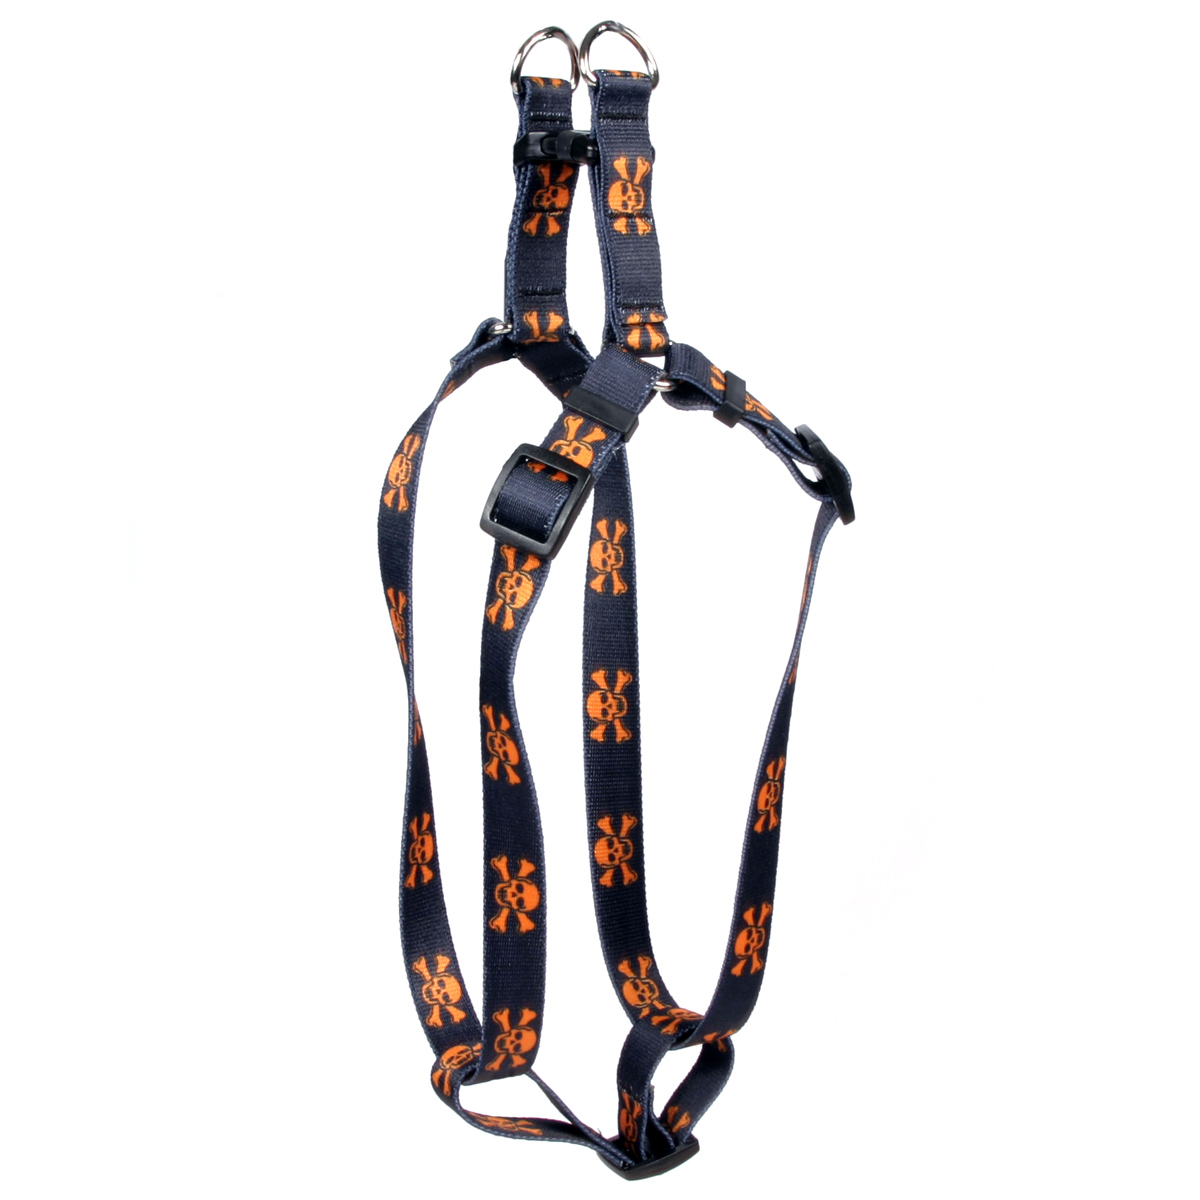 Orange and Black Skulls Step-In Harness